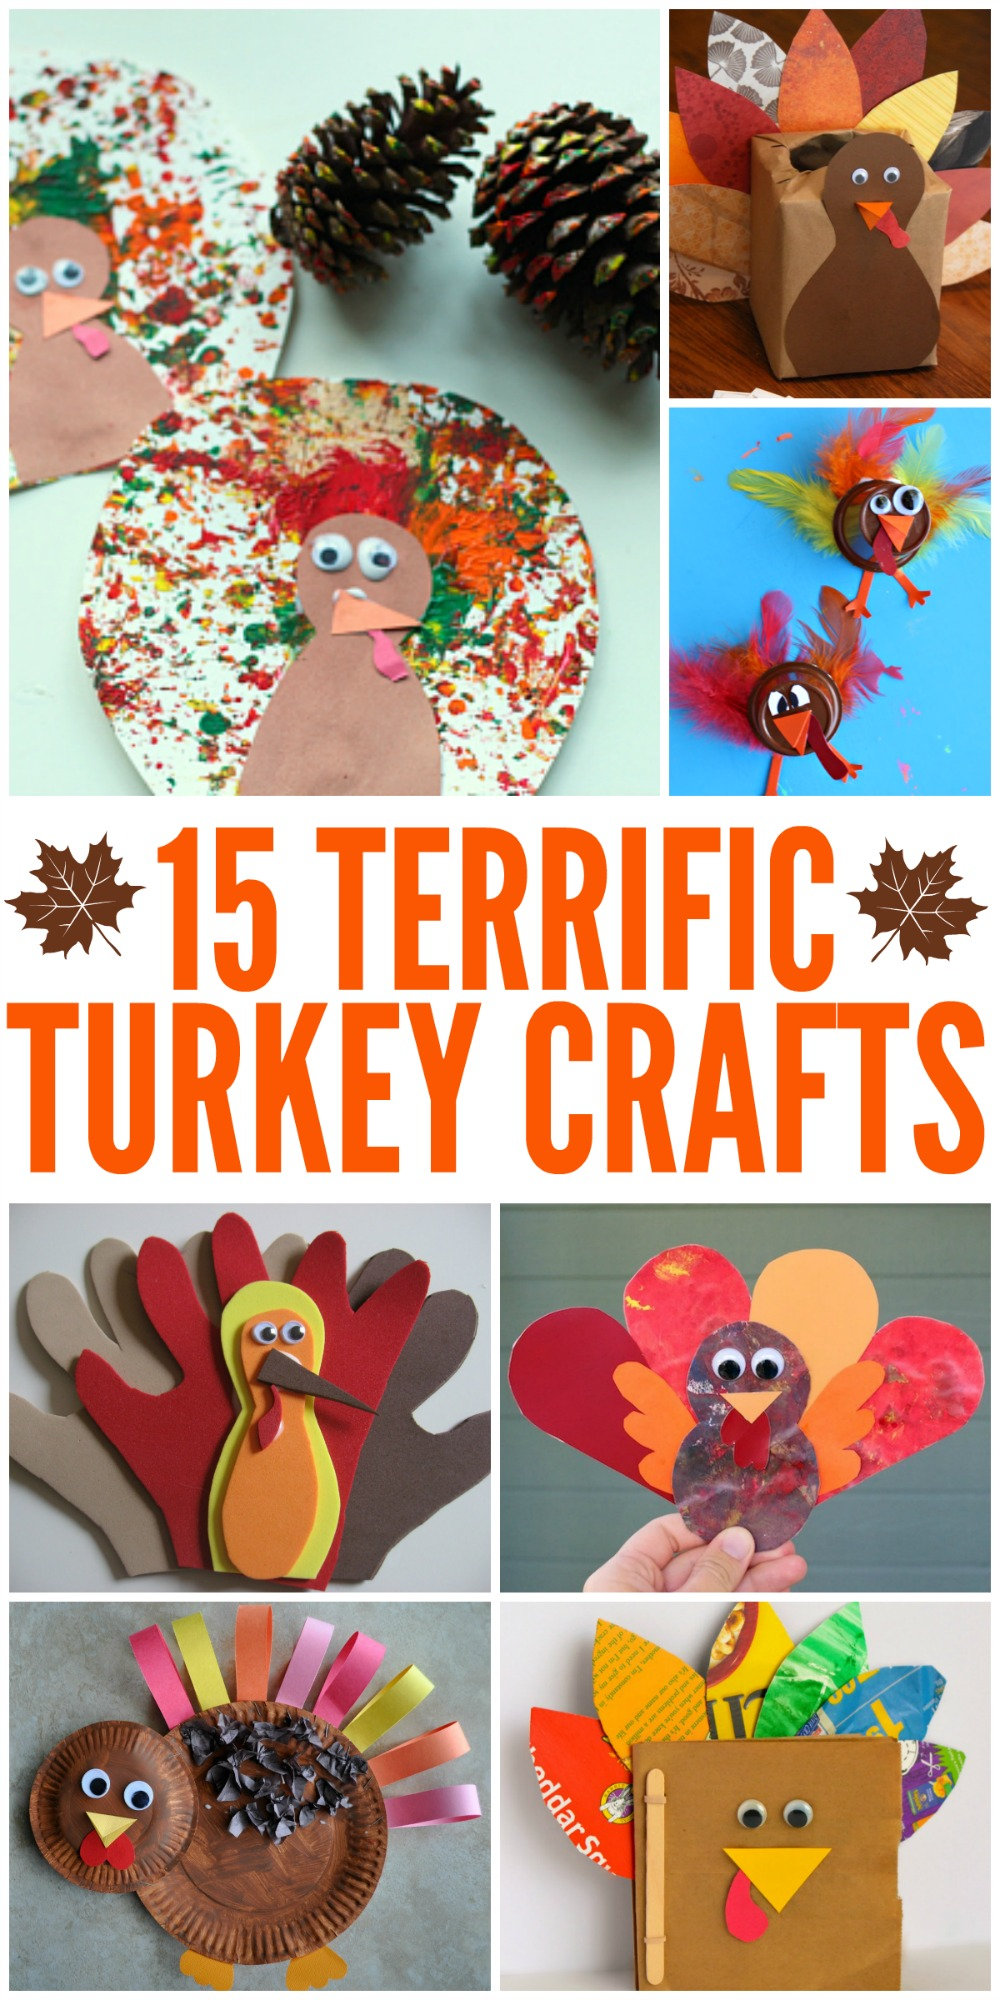 10 Terrific Turkey Crafts